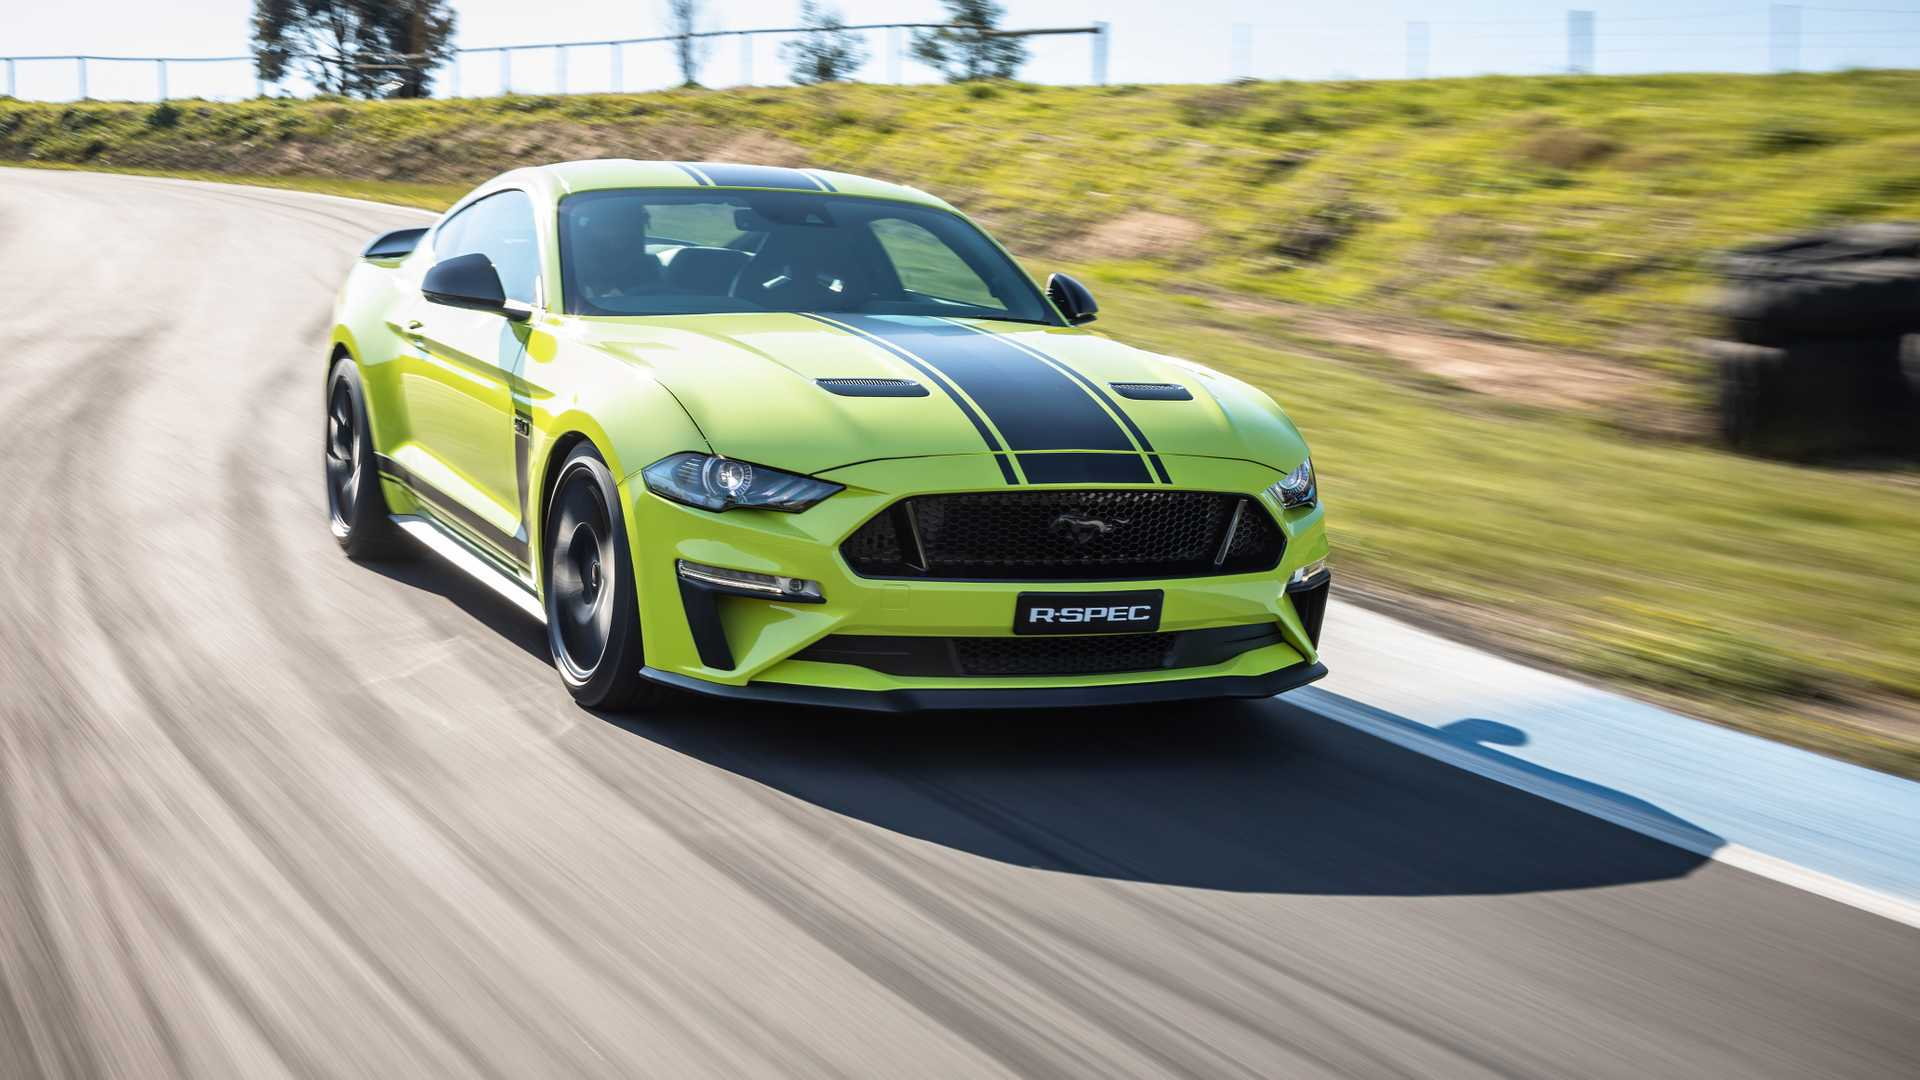 2020 Ford Mustang R-Spec (Color: Grabber Lime) Front Three-Quarter Wallpapers (6)